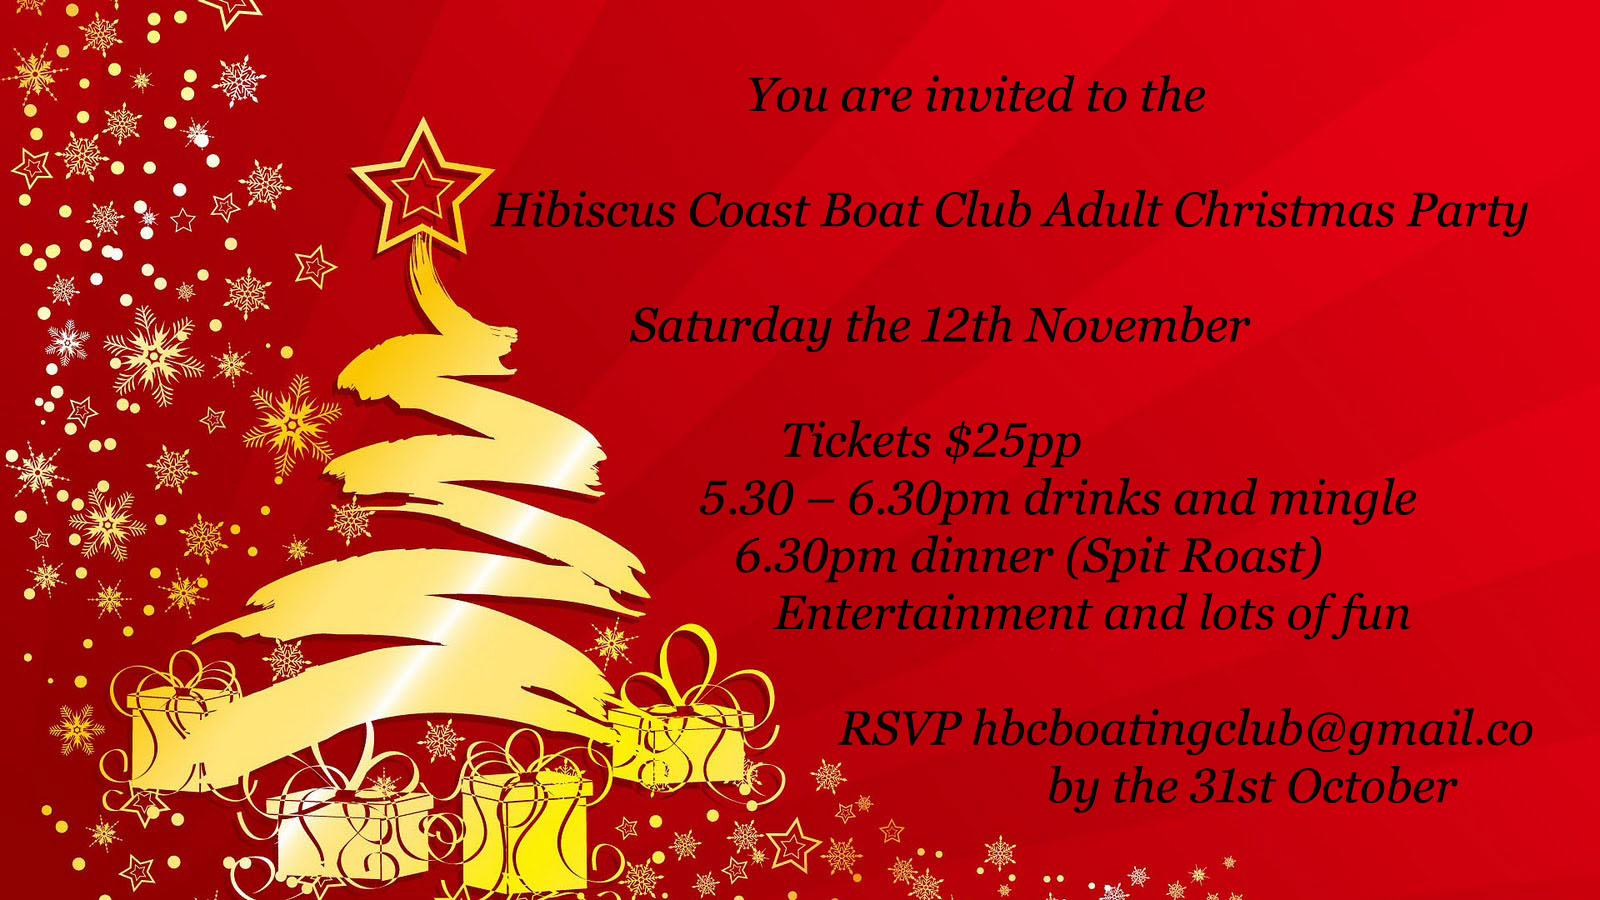 2016 Adult Christmas Party | Hibiscus Coast Boating Club Inc